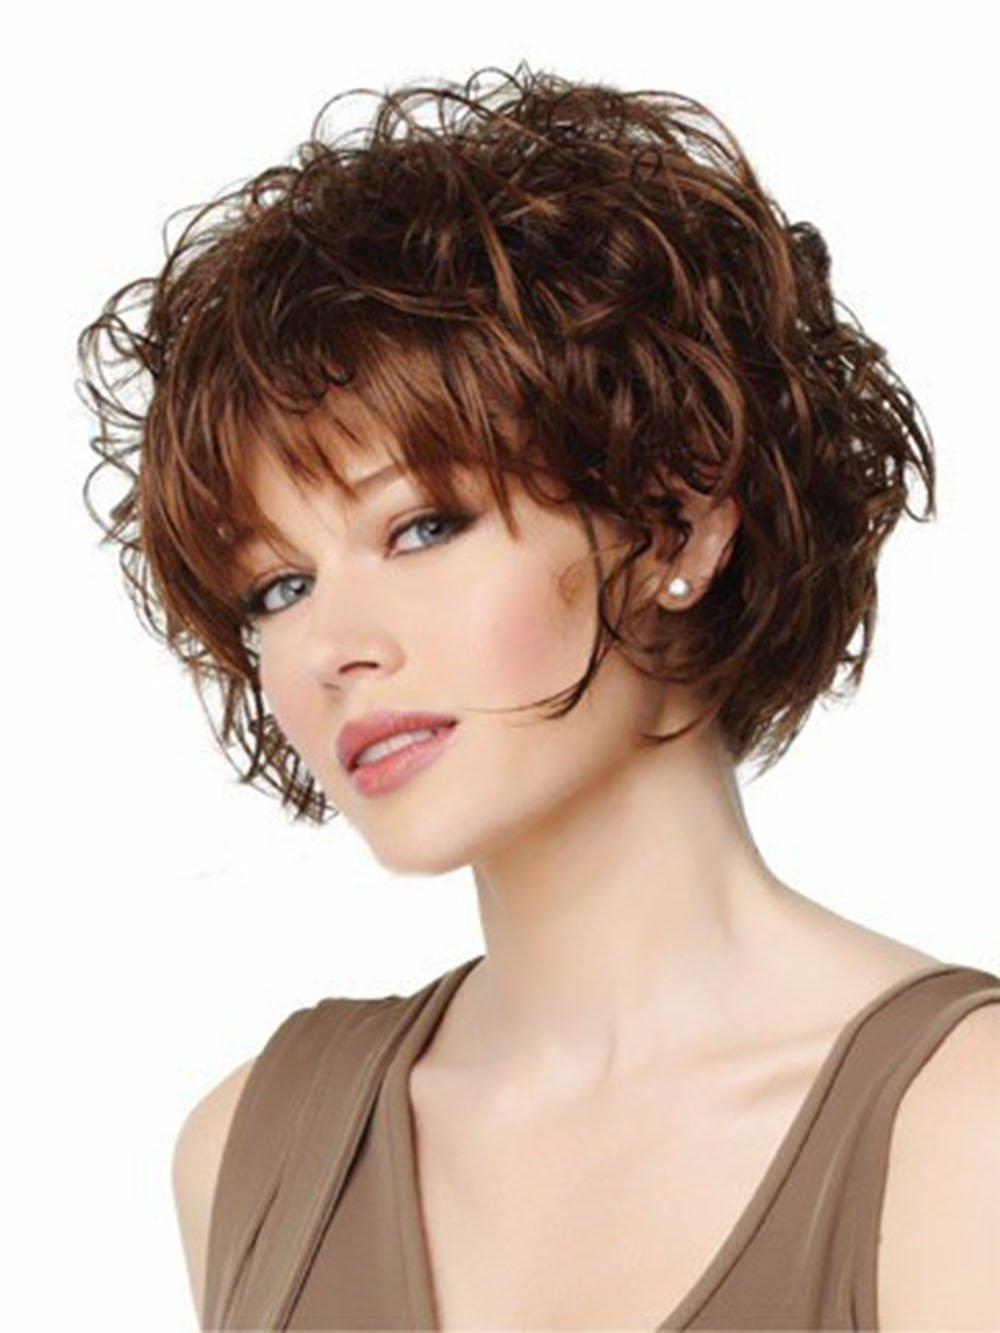 Amazon.com : 2015 Short Curly Hair Wig for Women Synthetic Wigspixie Cut Wig Cap Fashion Pelucas Sinteticas with Bangs (25cm/9.84inch, Brown) : Beauty